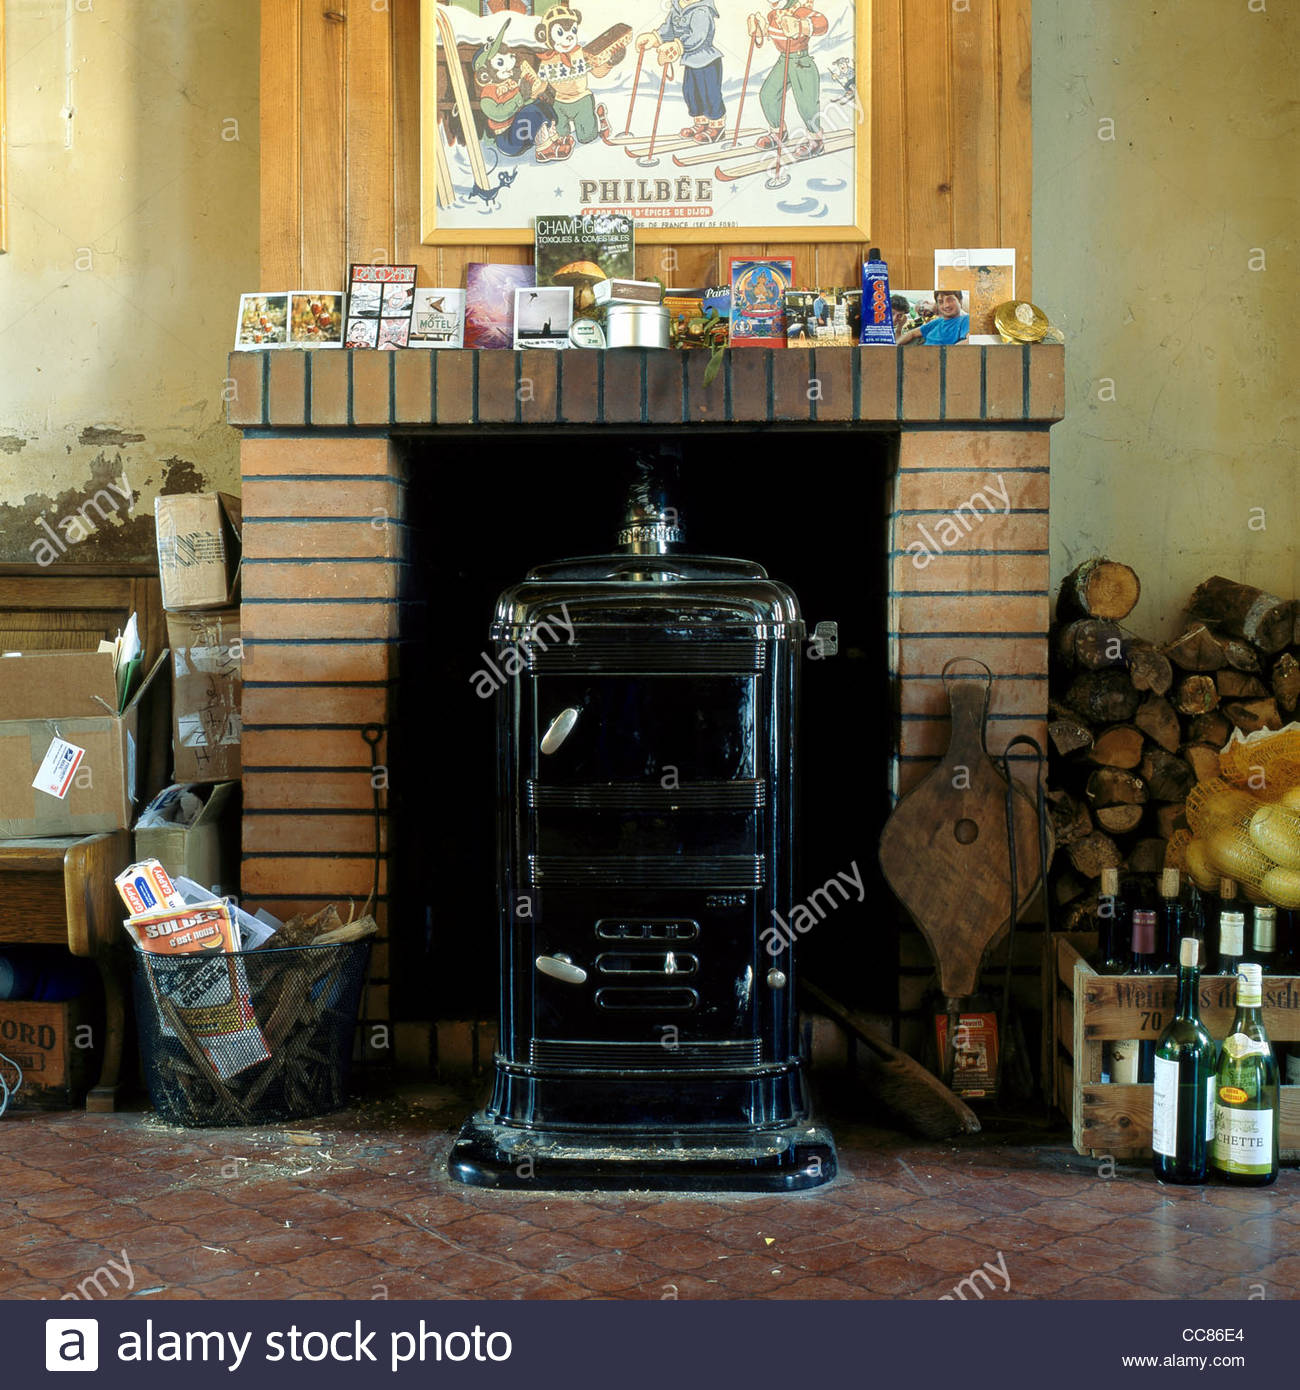 A wood-burning stove for heating in a fireplace in a rural country home, Limousin, France - Stock Image